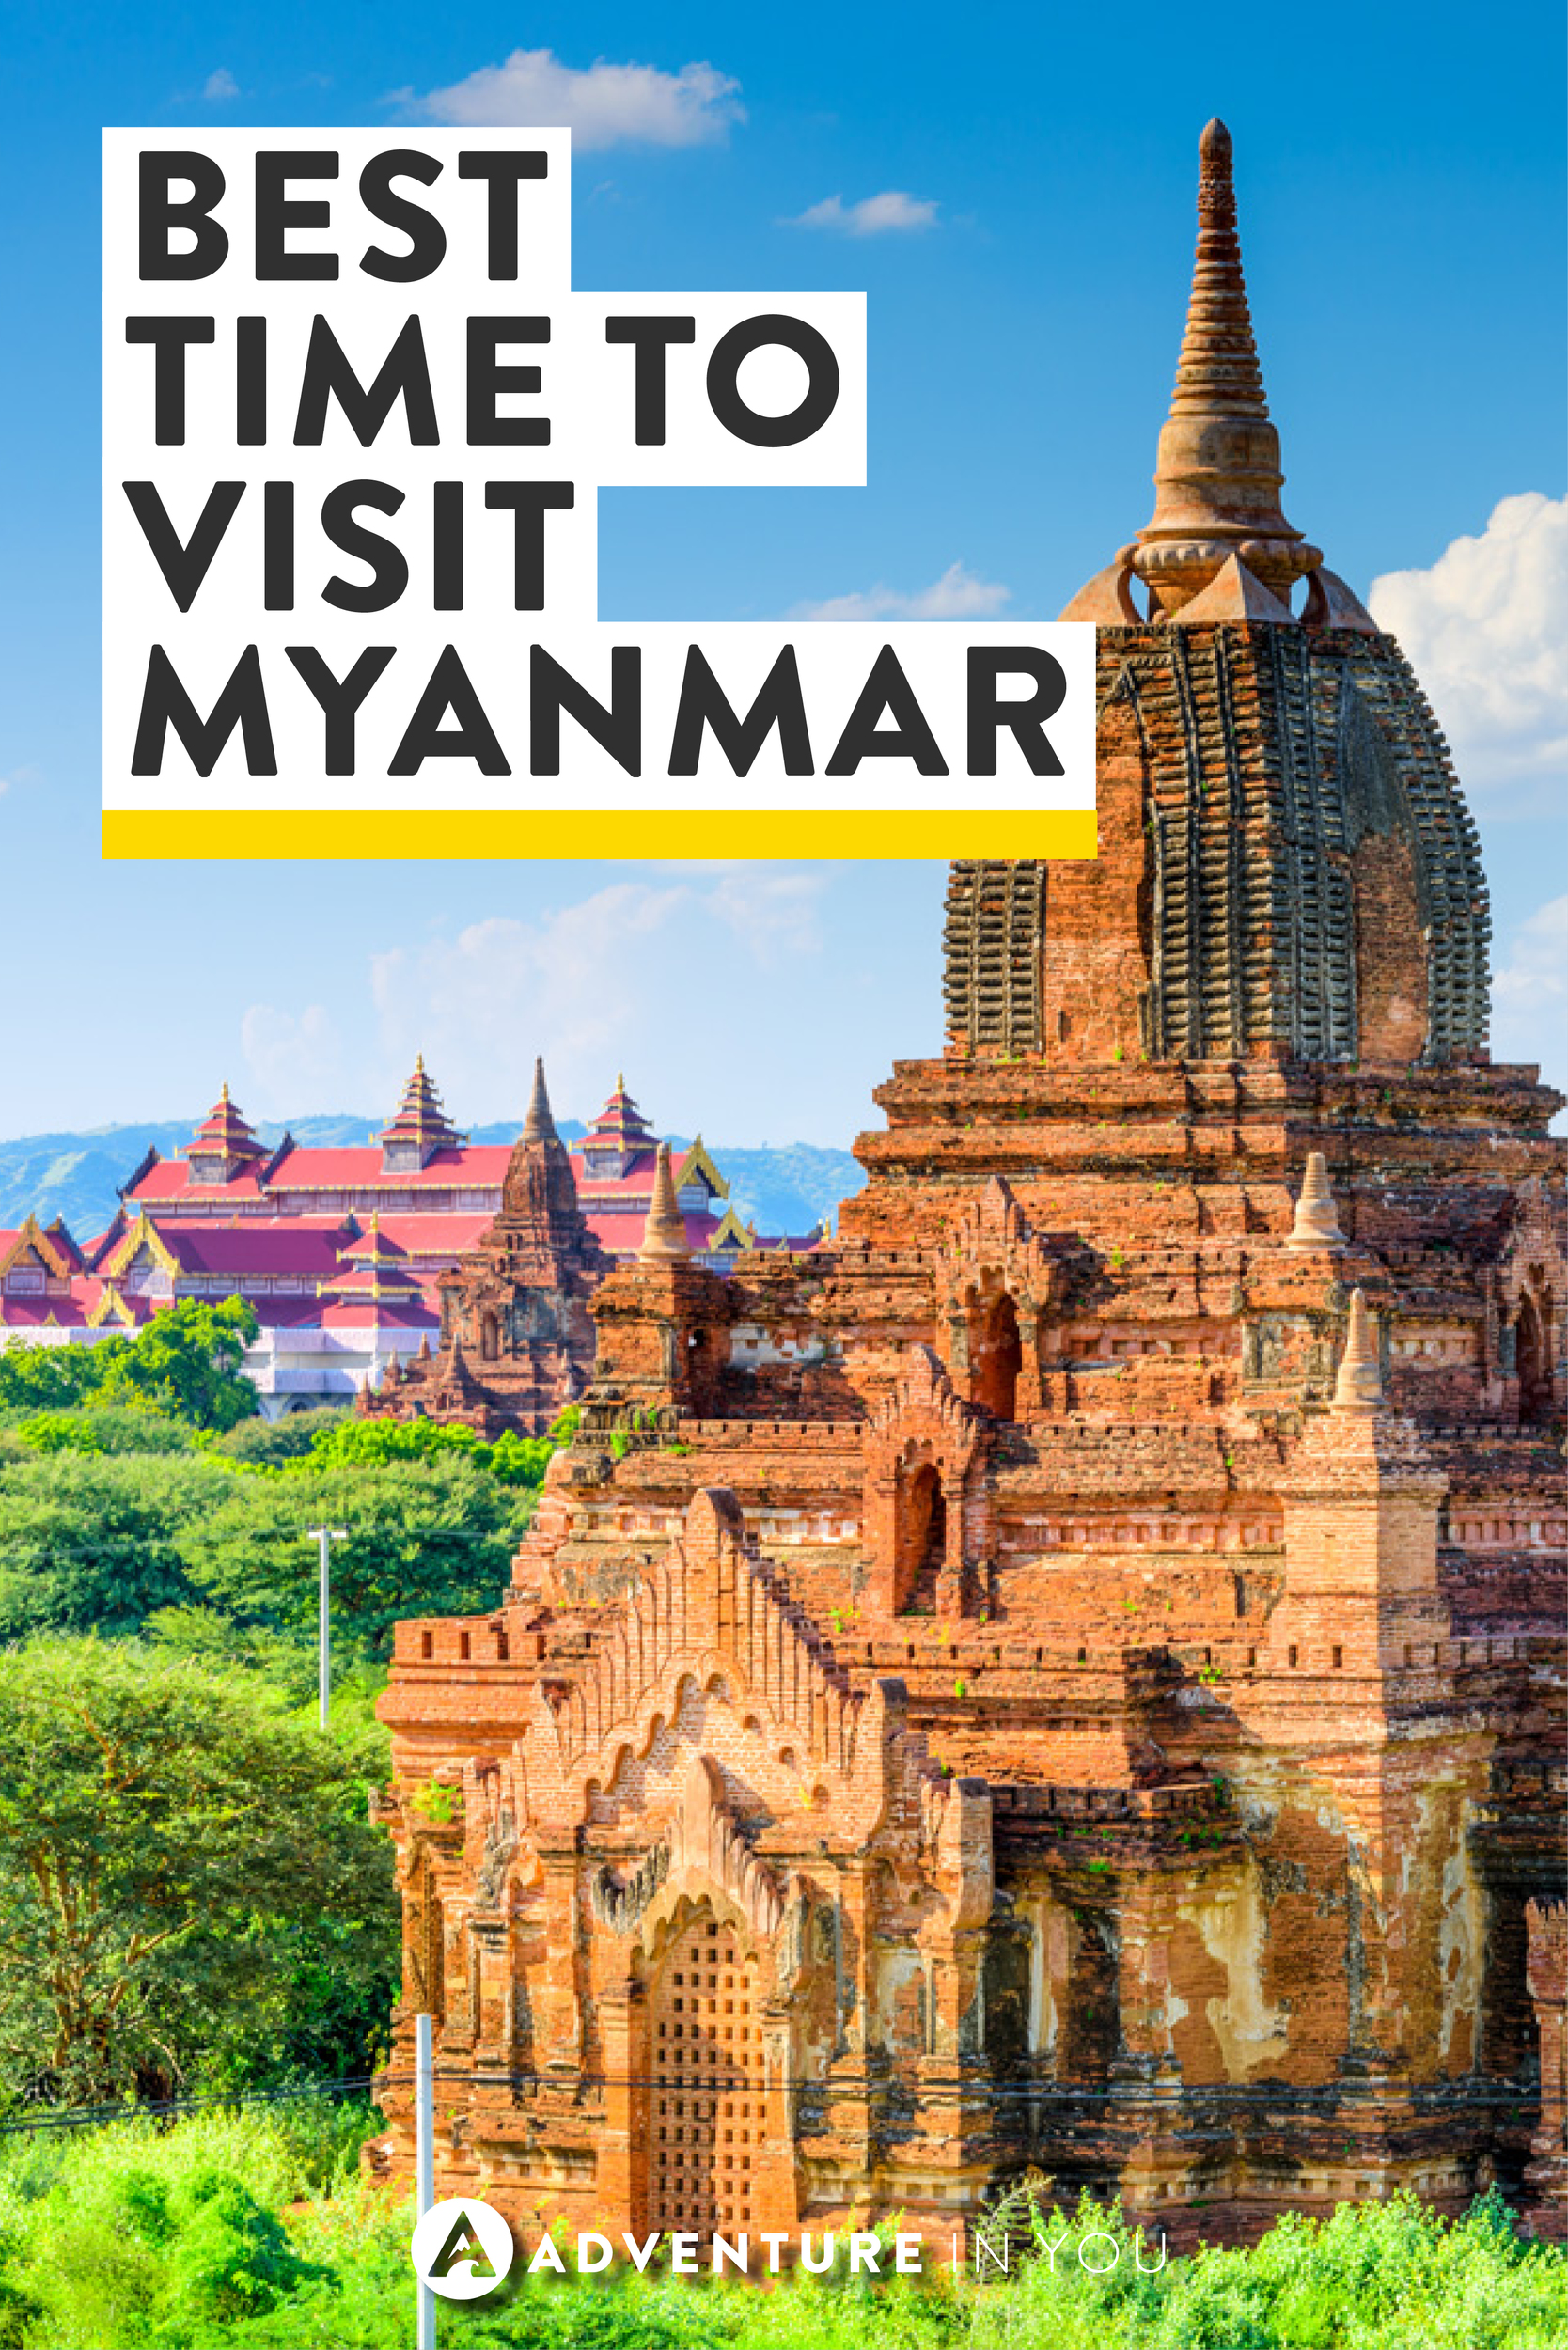 Myanmar Travel | Looking for tips on the best time to visit Myanmar? Take a look at our detailed guide on the best places to visit, when to go, and the weather in those regions